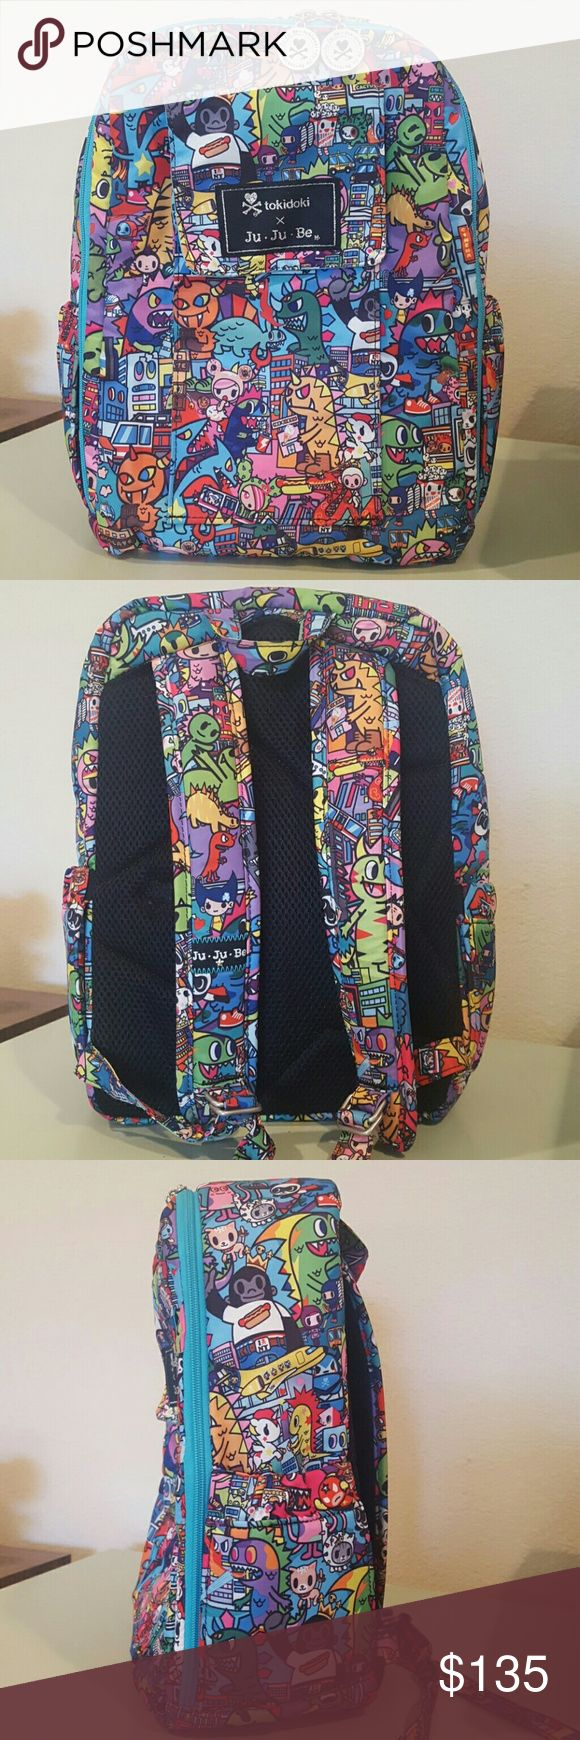 JuJuBe Kaiju City Minibe Ju ju be KJC minibe backpack. Like new, was only used once or twice. JuJuBe  Bags Baby Bags